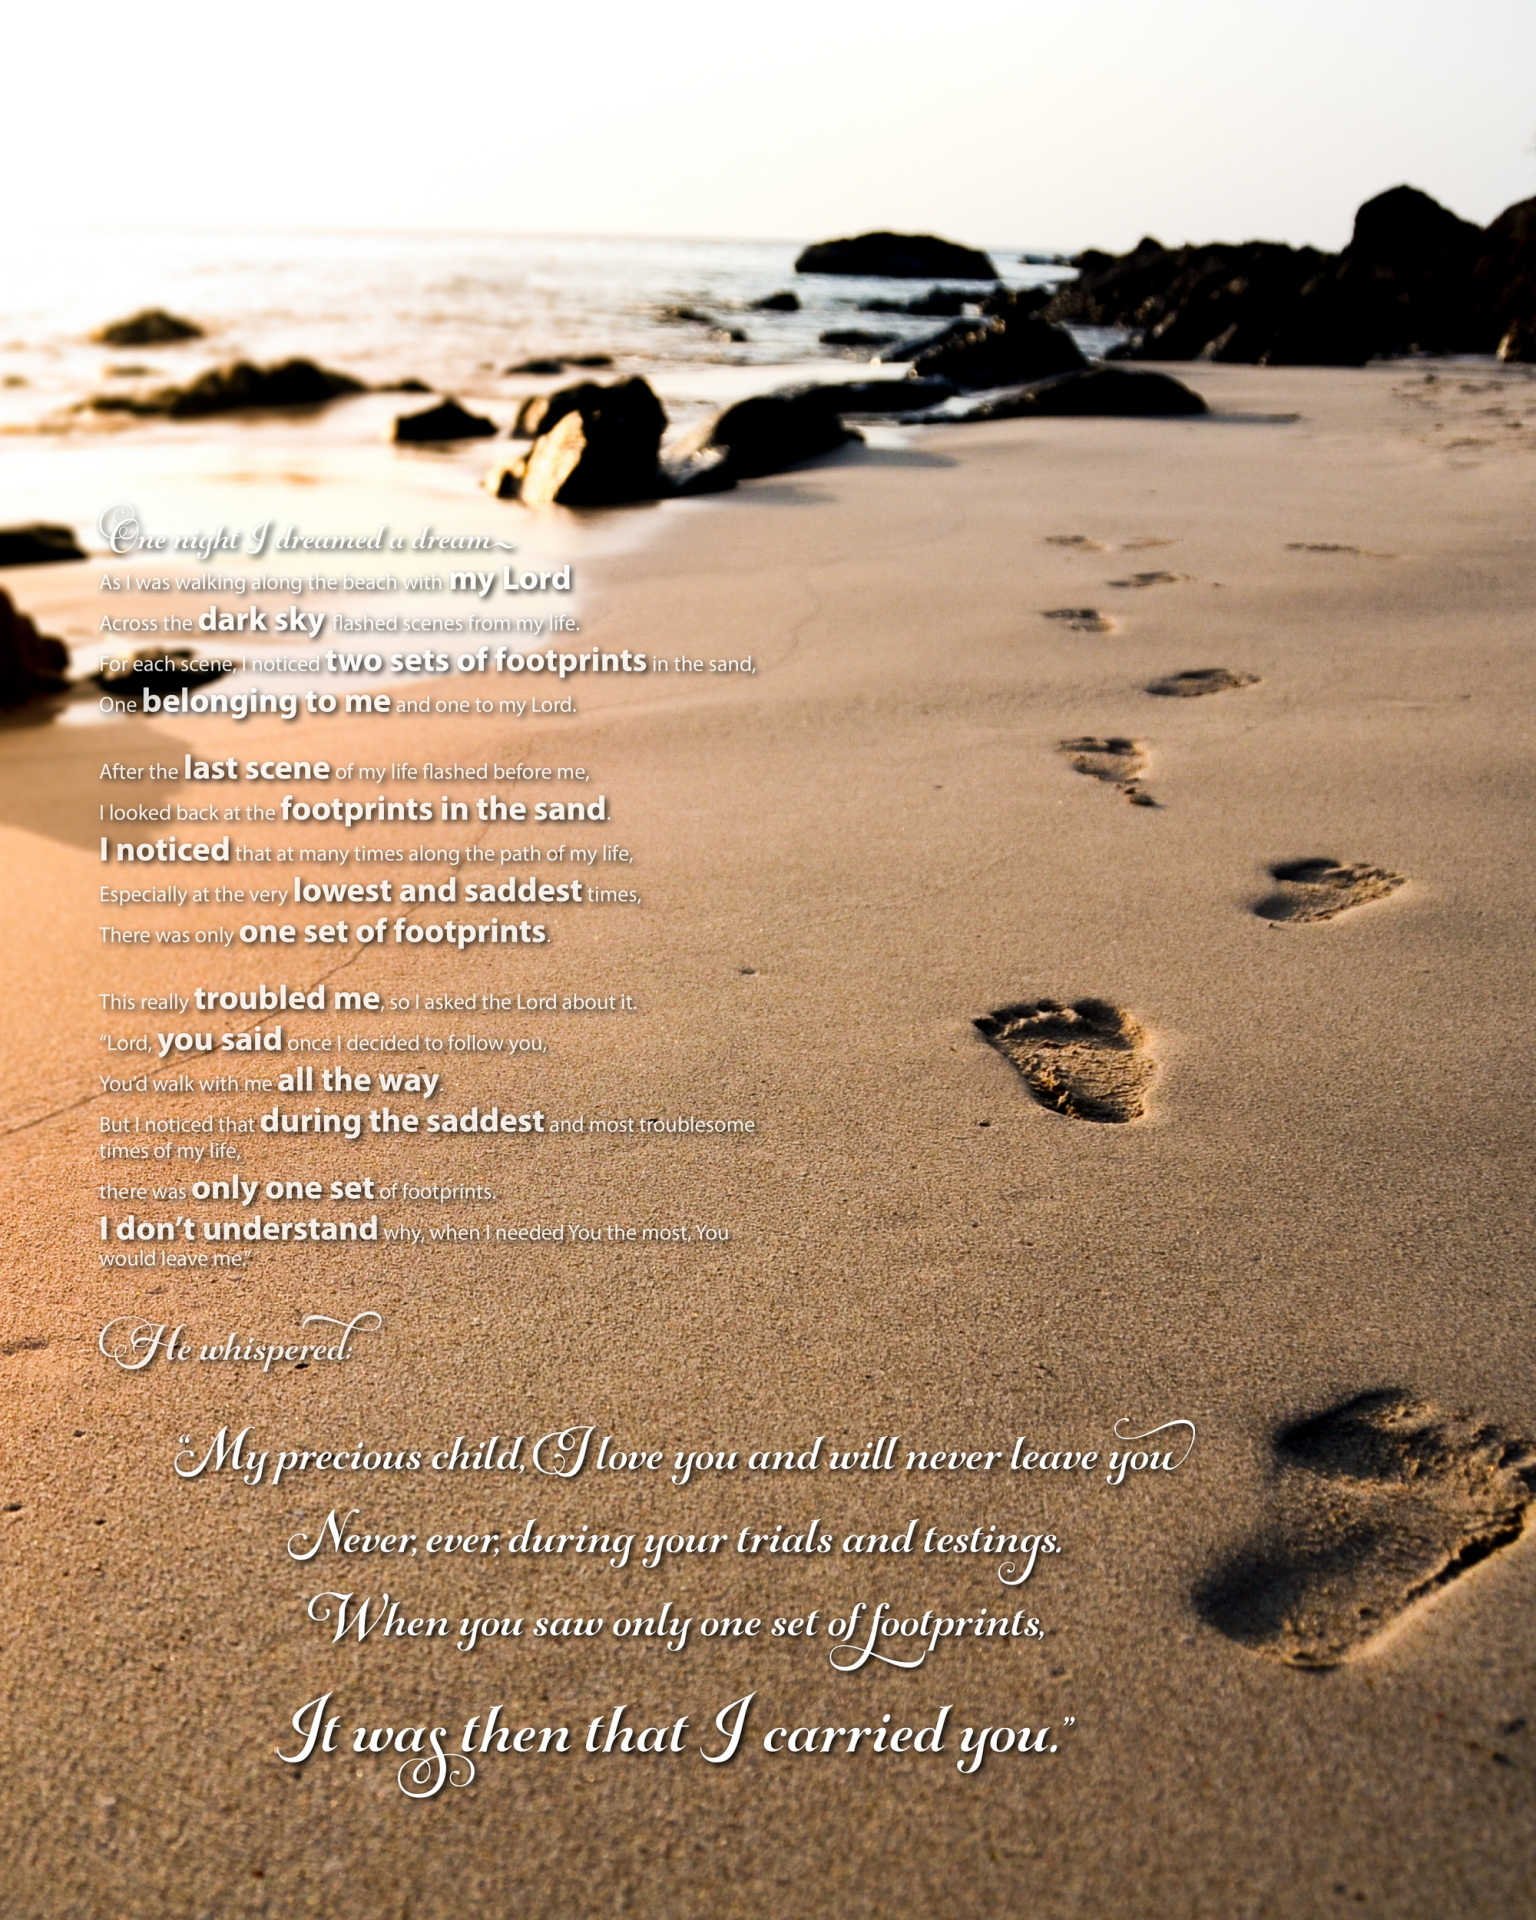 Footprints-in-the-Sand-16x20-Poster4.jpg